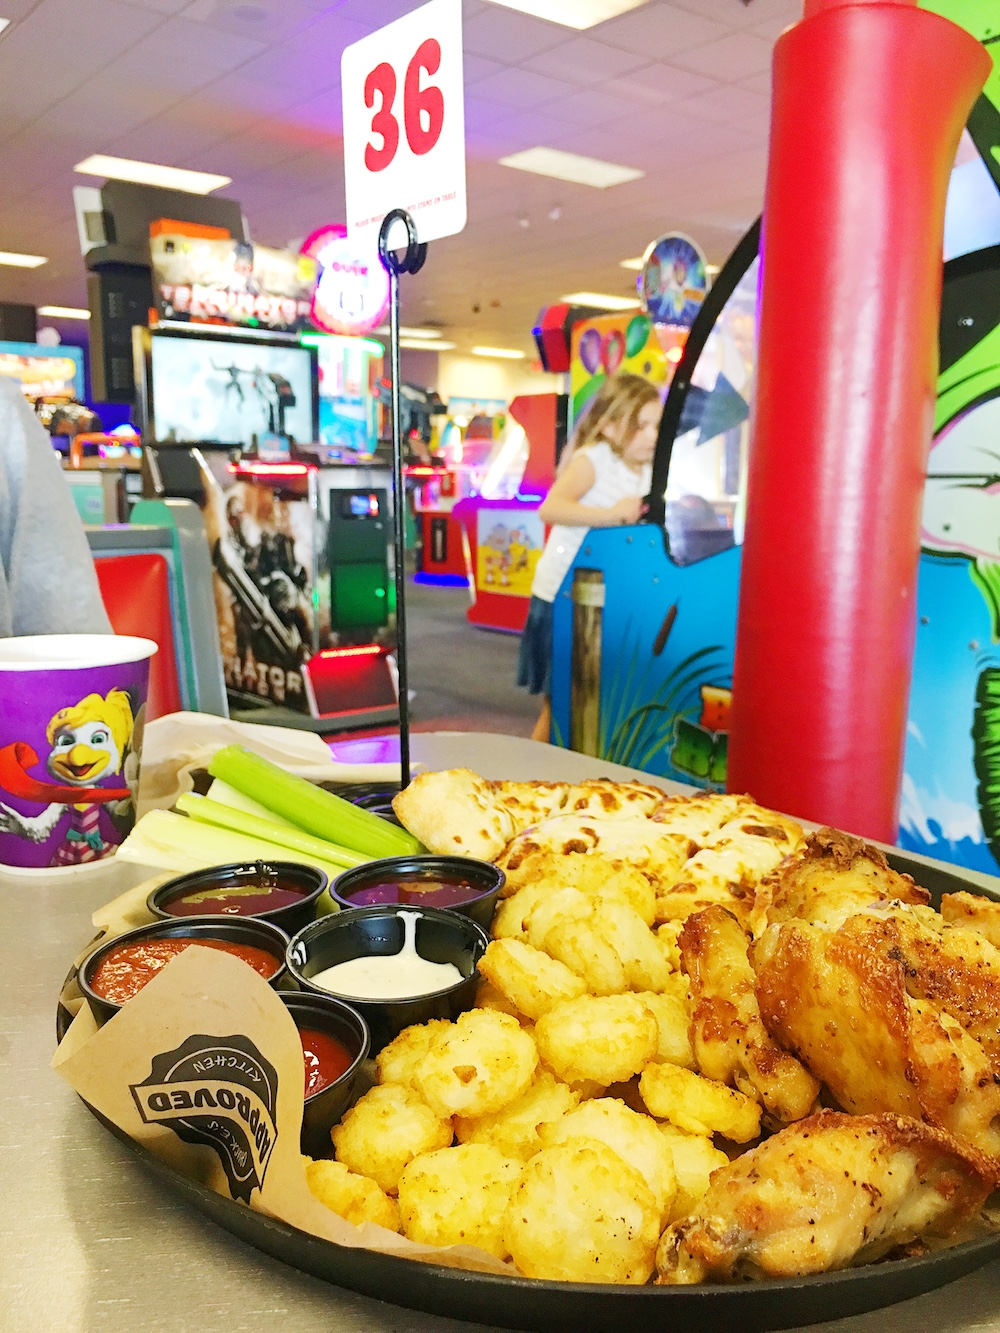 Family appetizer platter at Chuck E. Cheese's - LivingMiVidaLoca.com